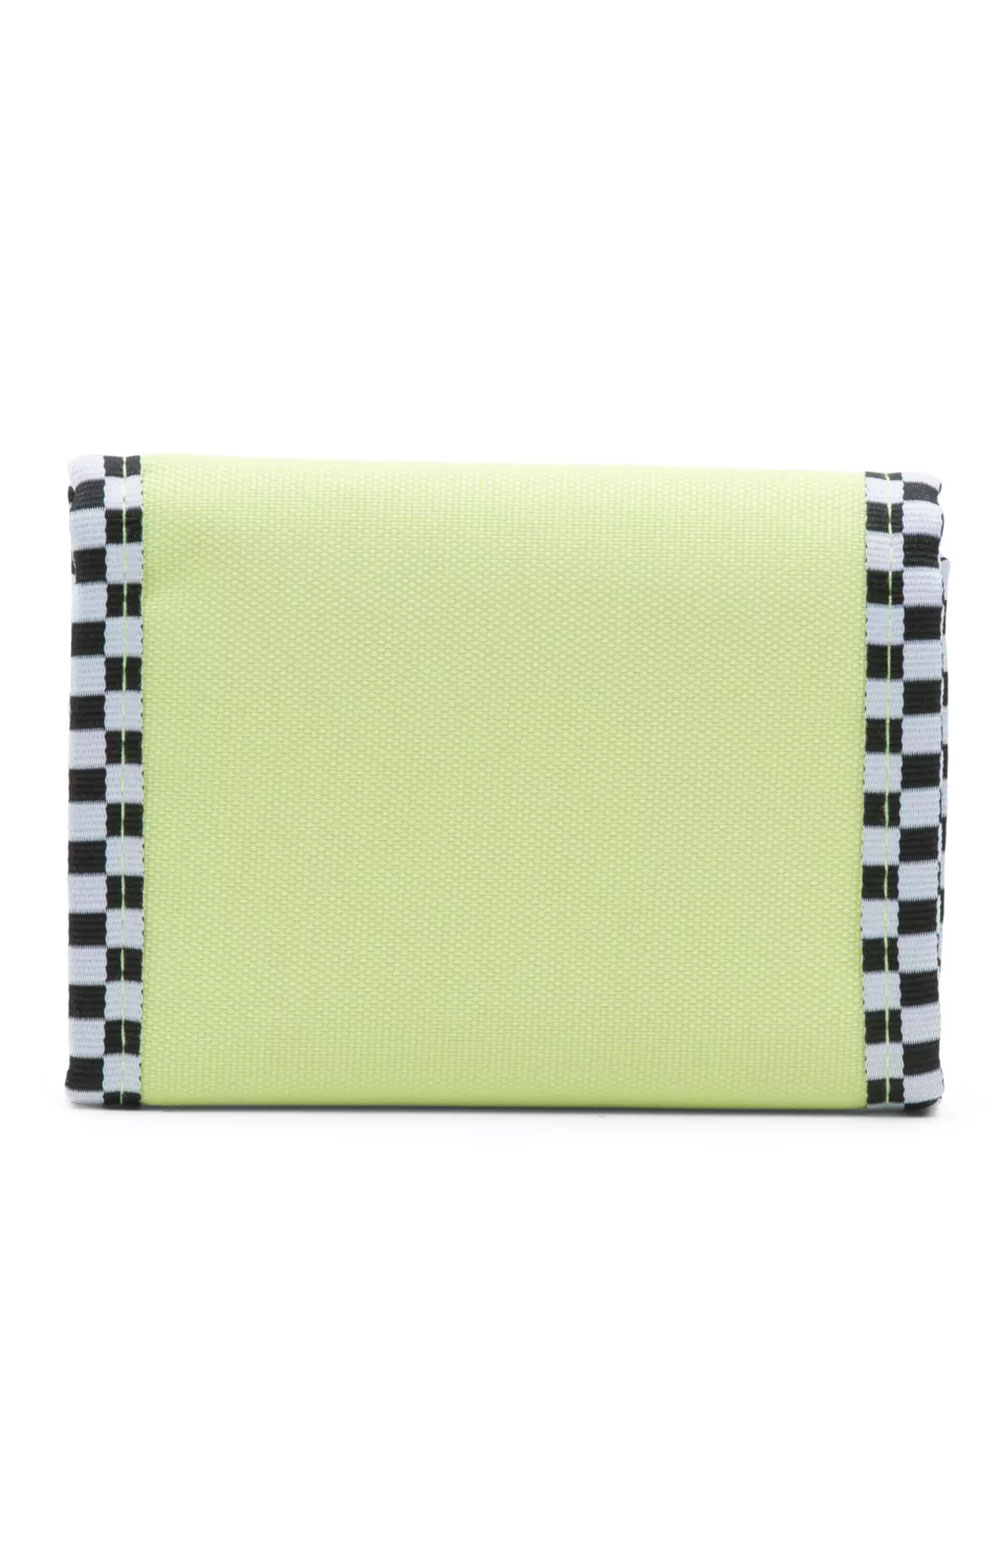 Cash Flow Wallet - Sunny Lime 2